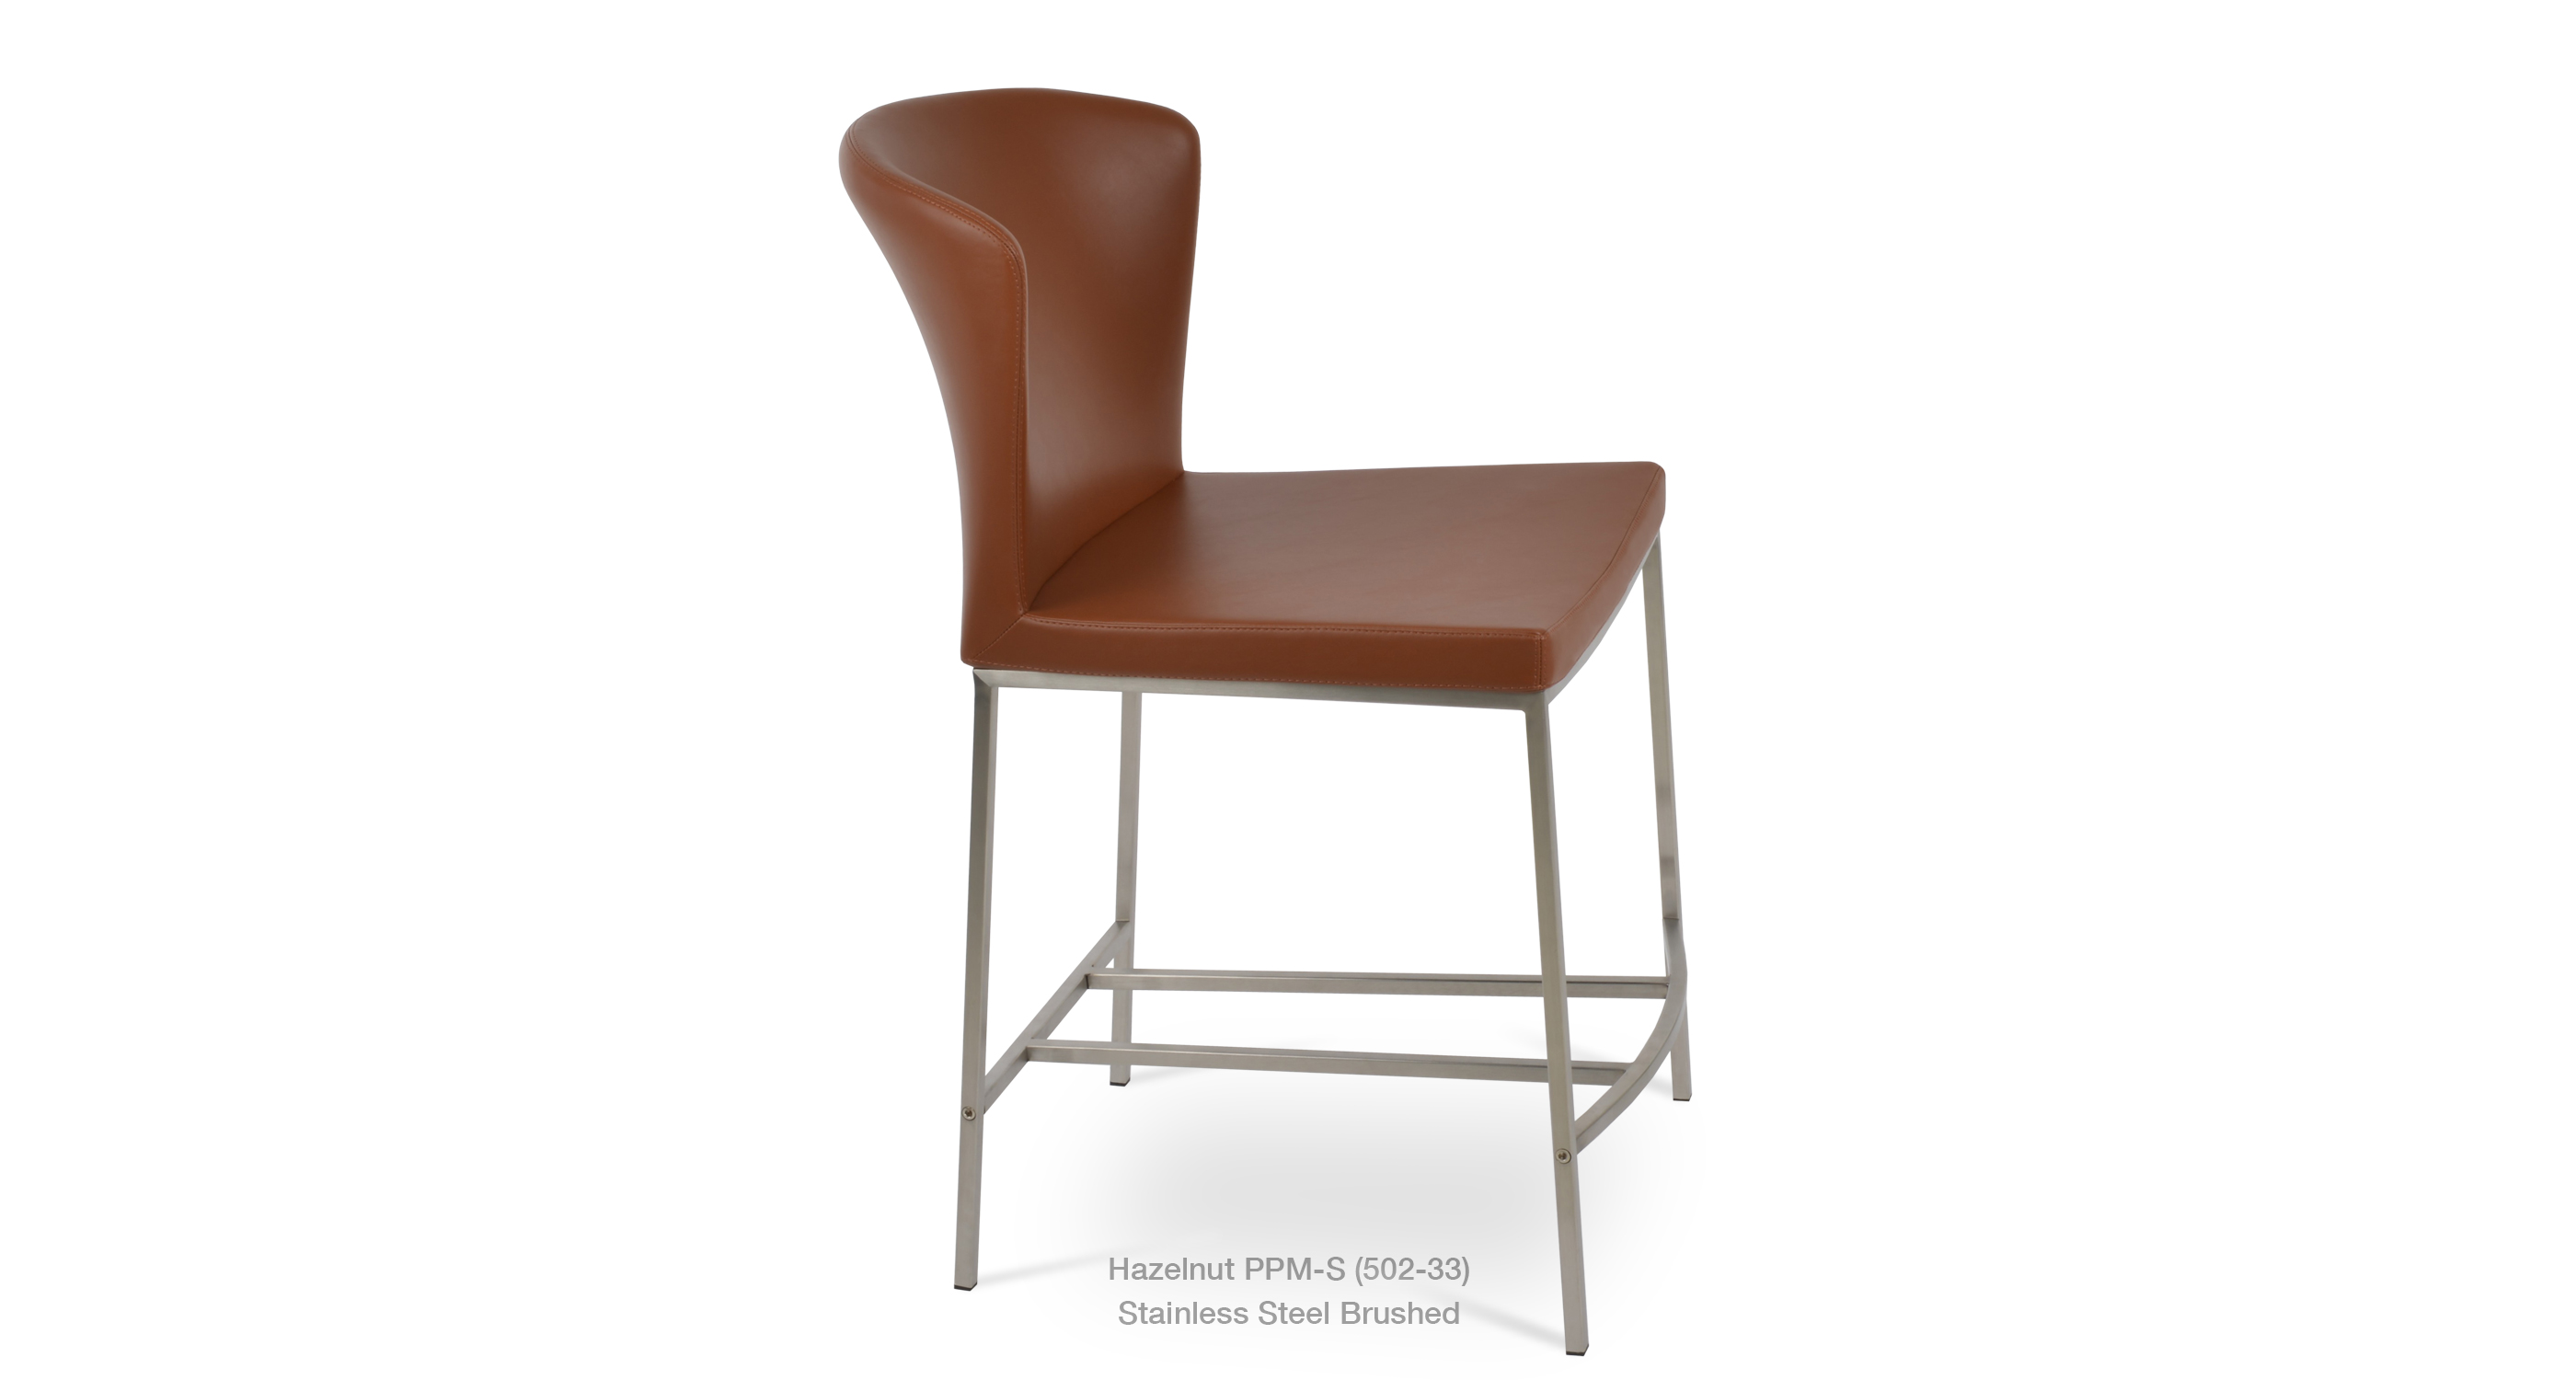 2020 01 28 Capri Stool Stainless Steel Hazelnut